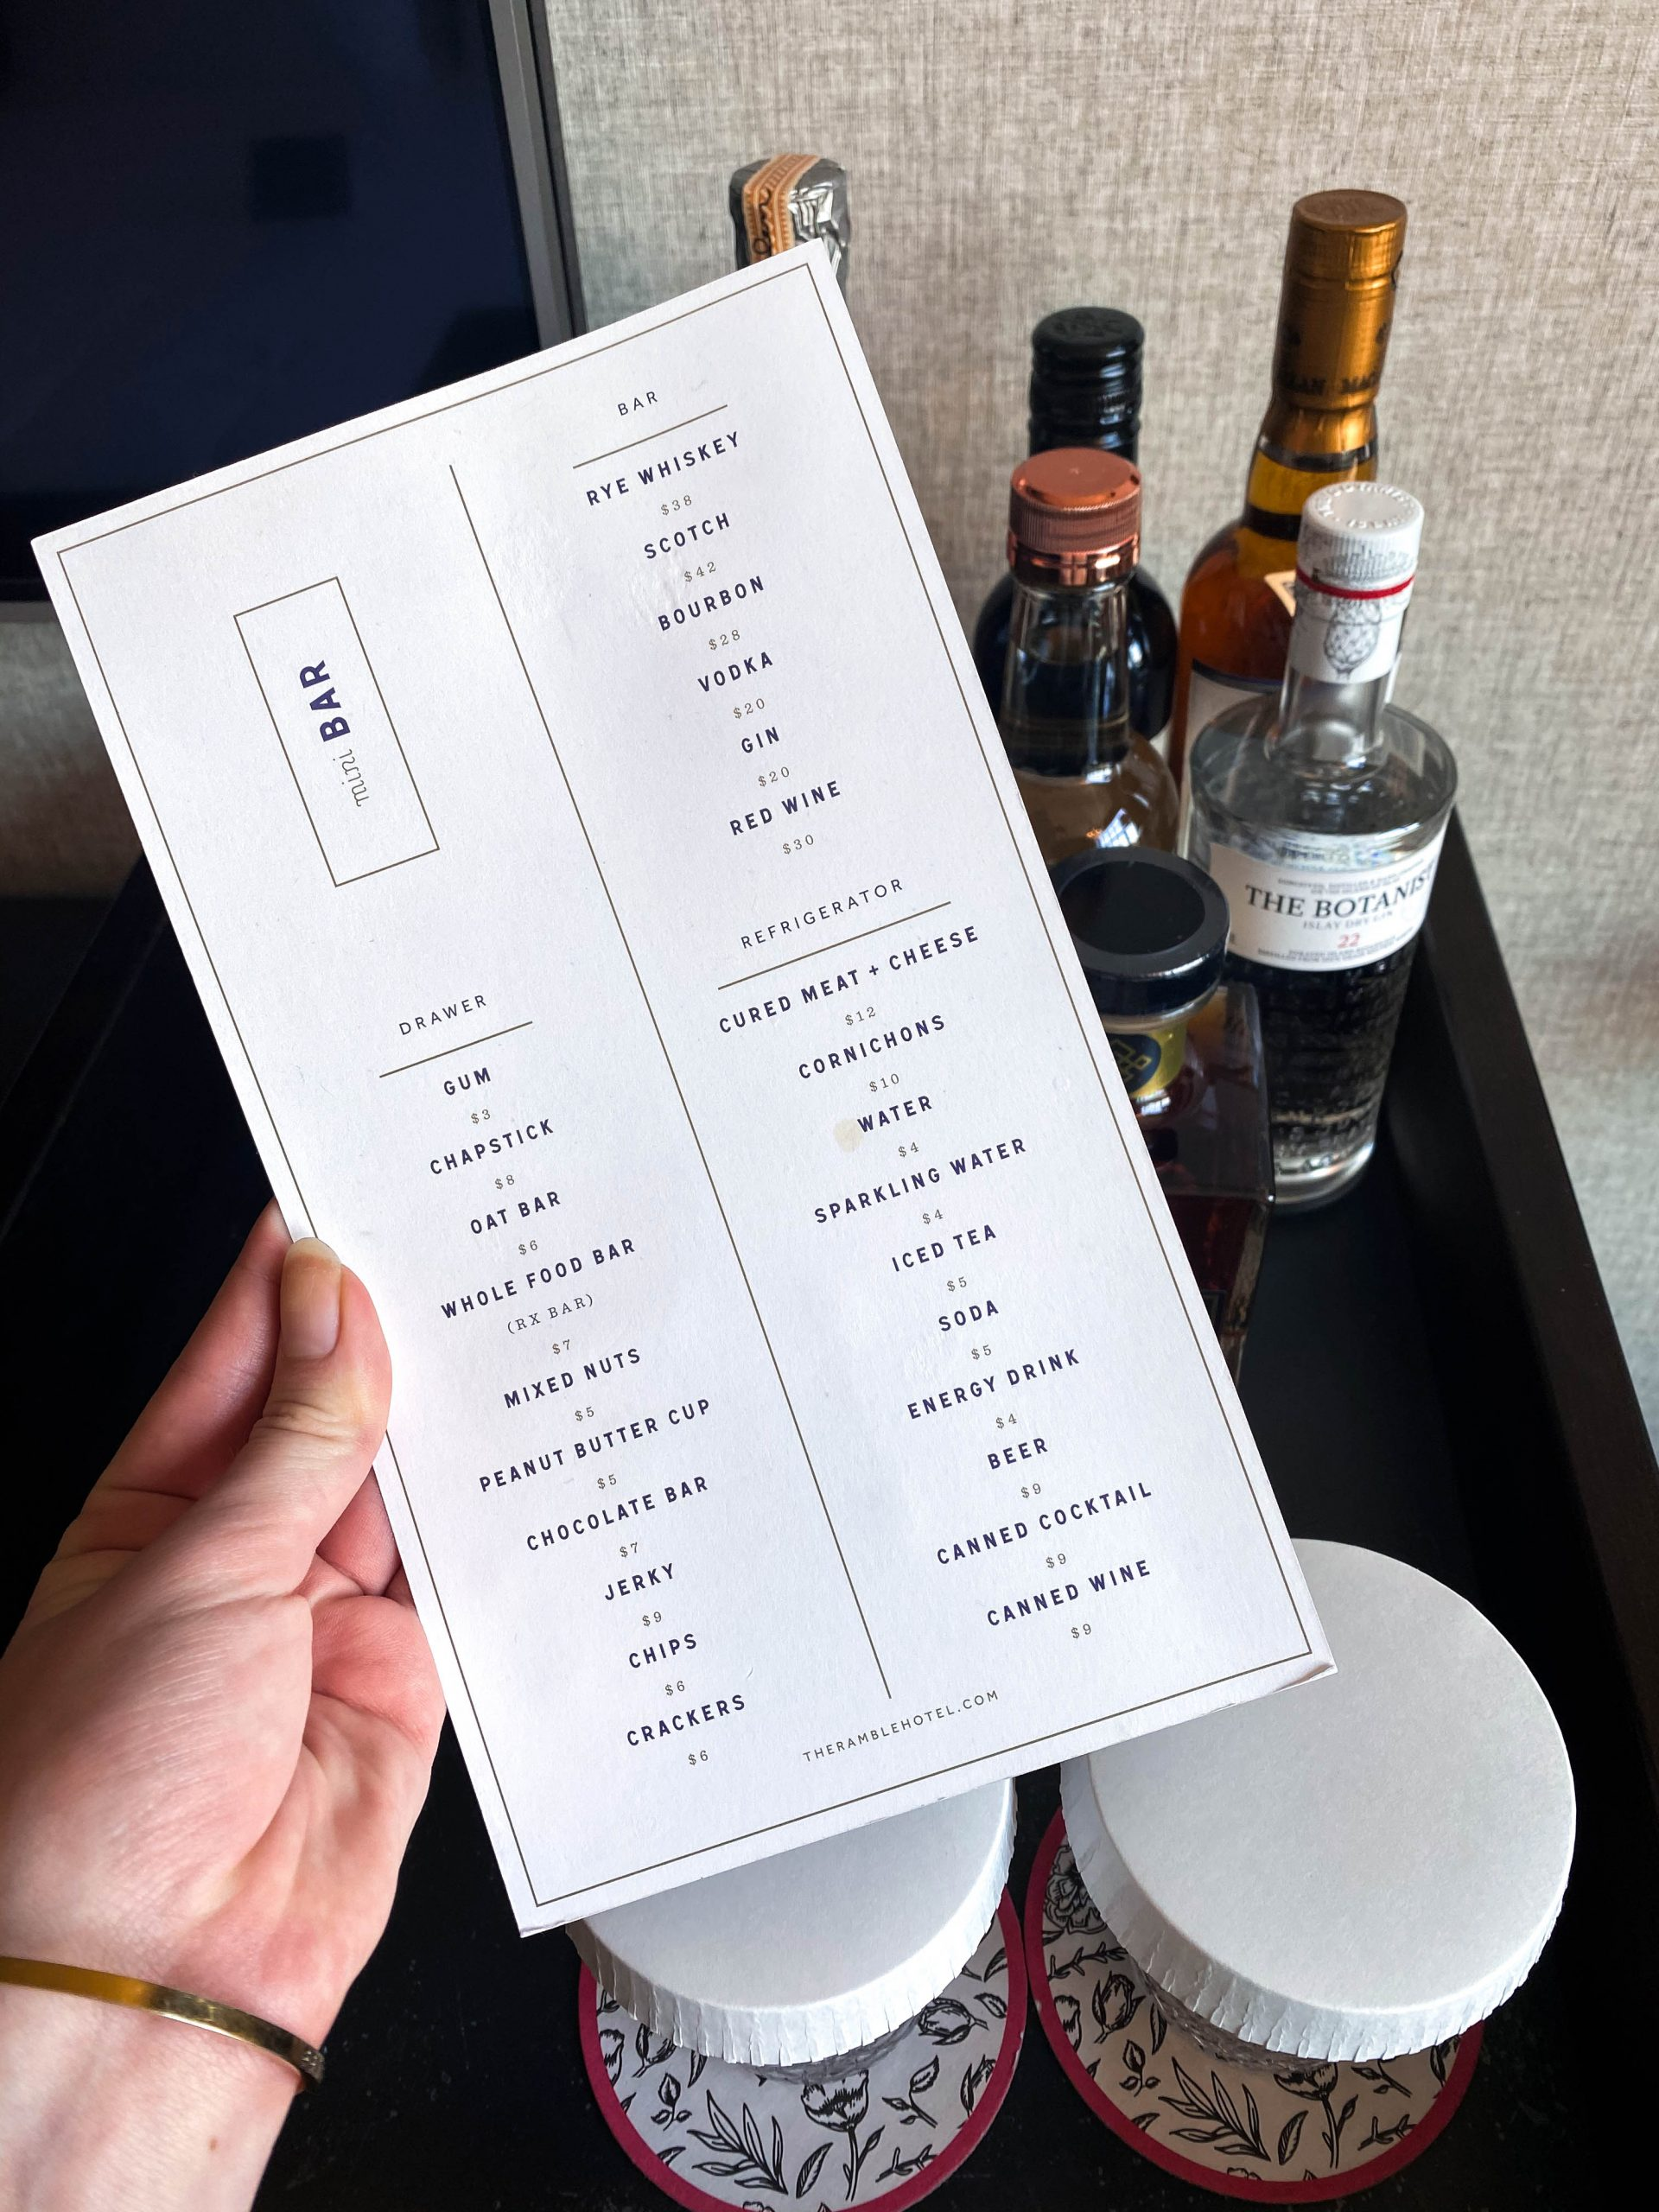 death and co in room mini bar menu denver colorado ramble hotel